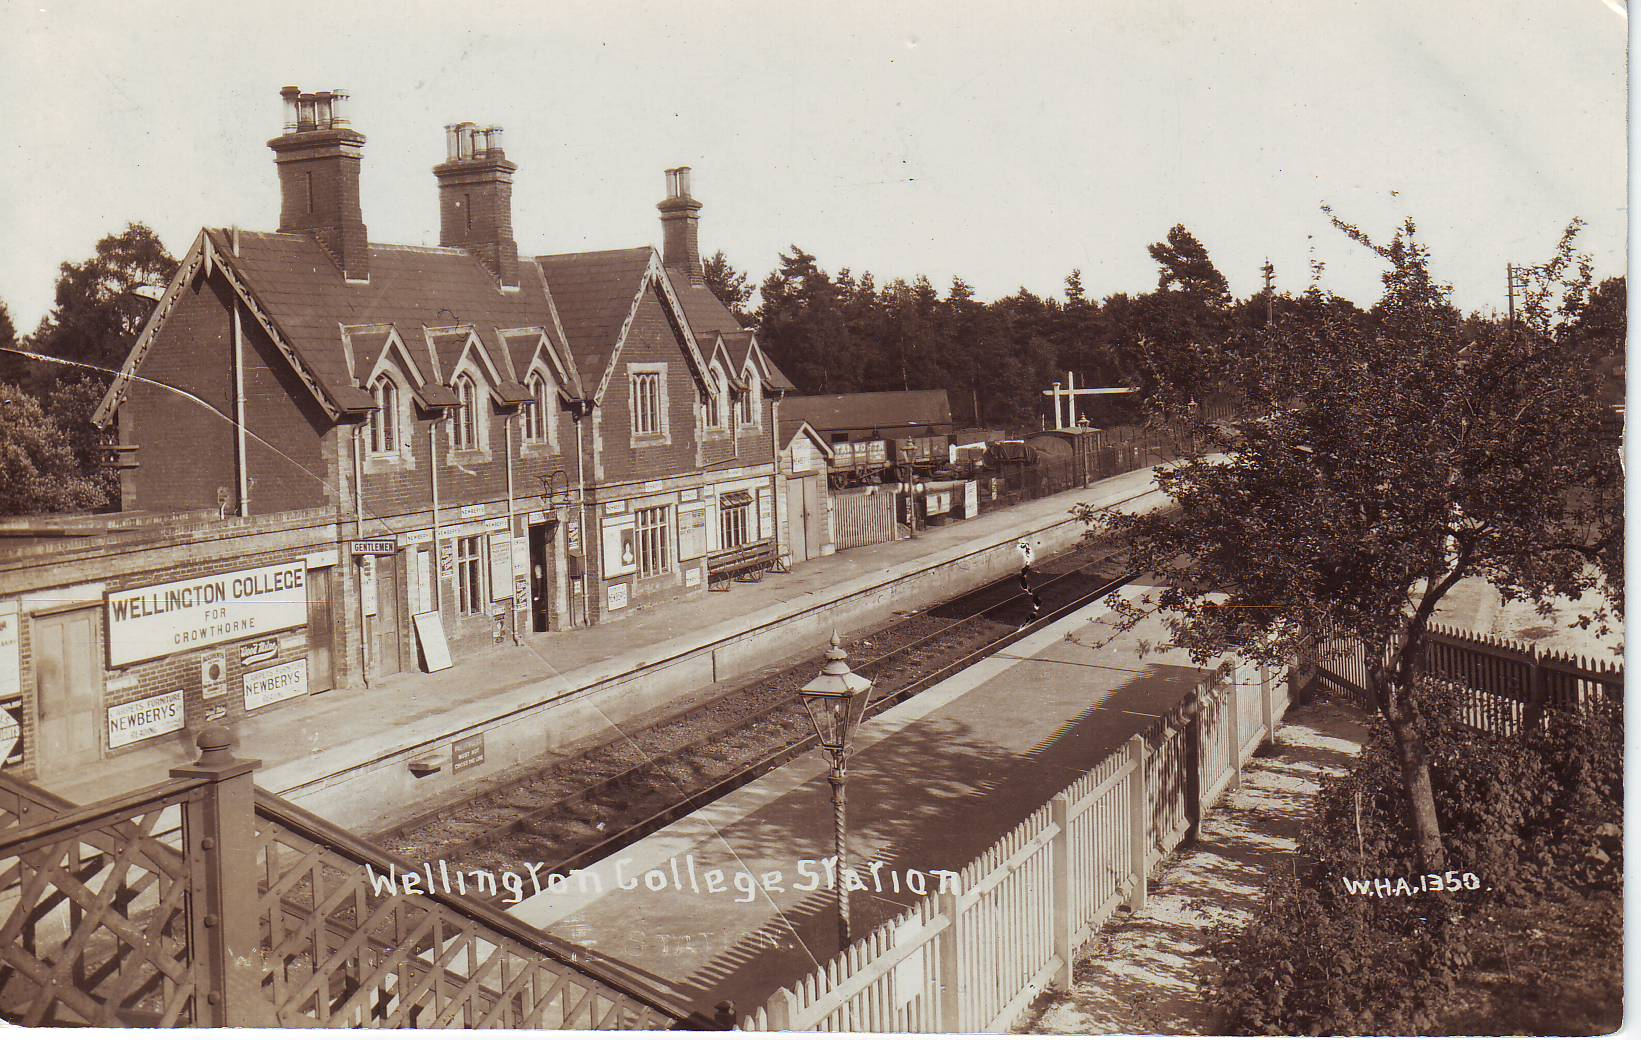 Wellington College Station: W.H.A.1350